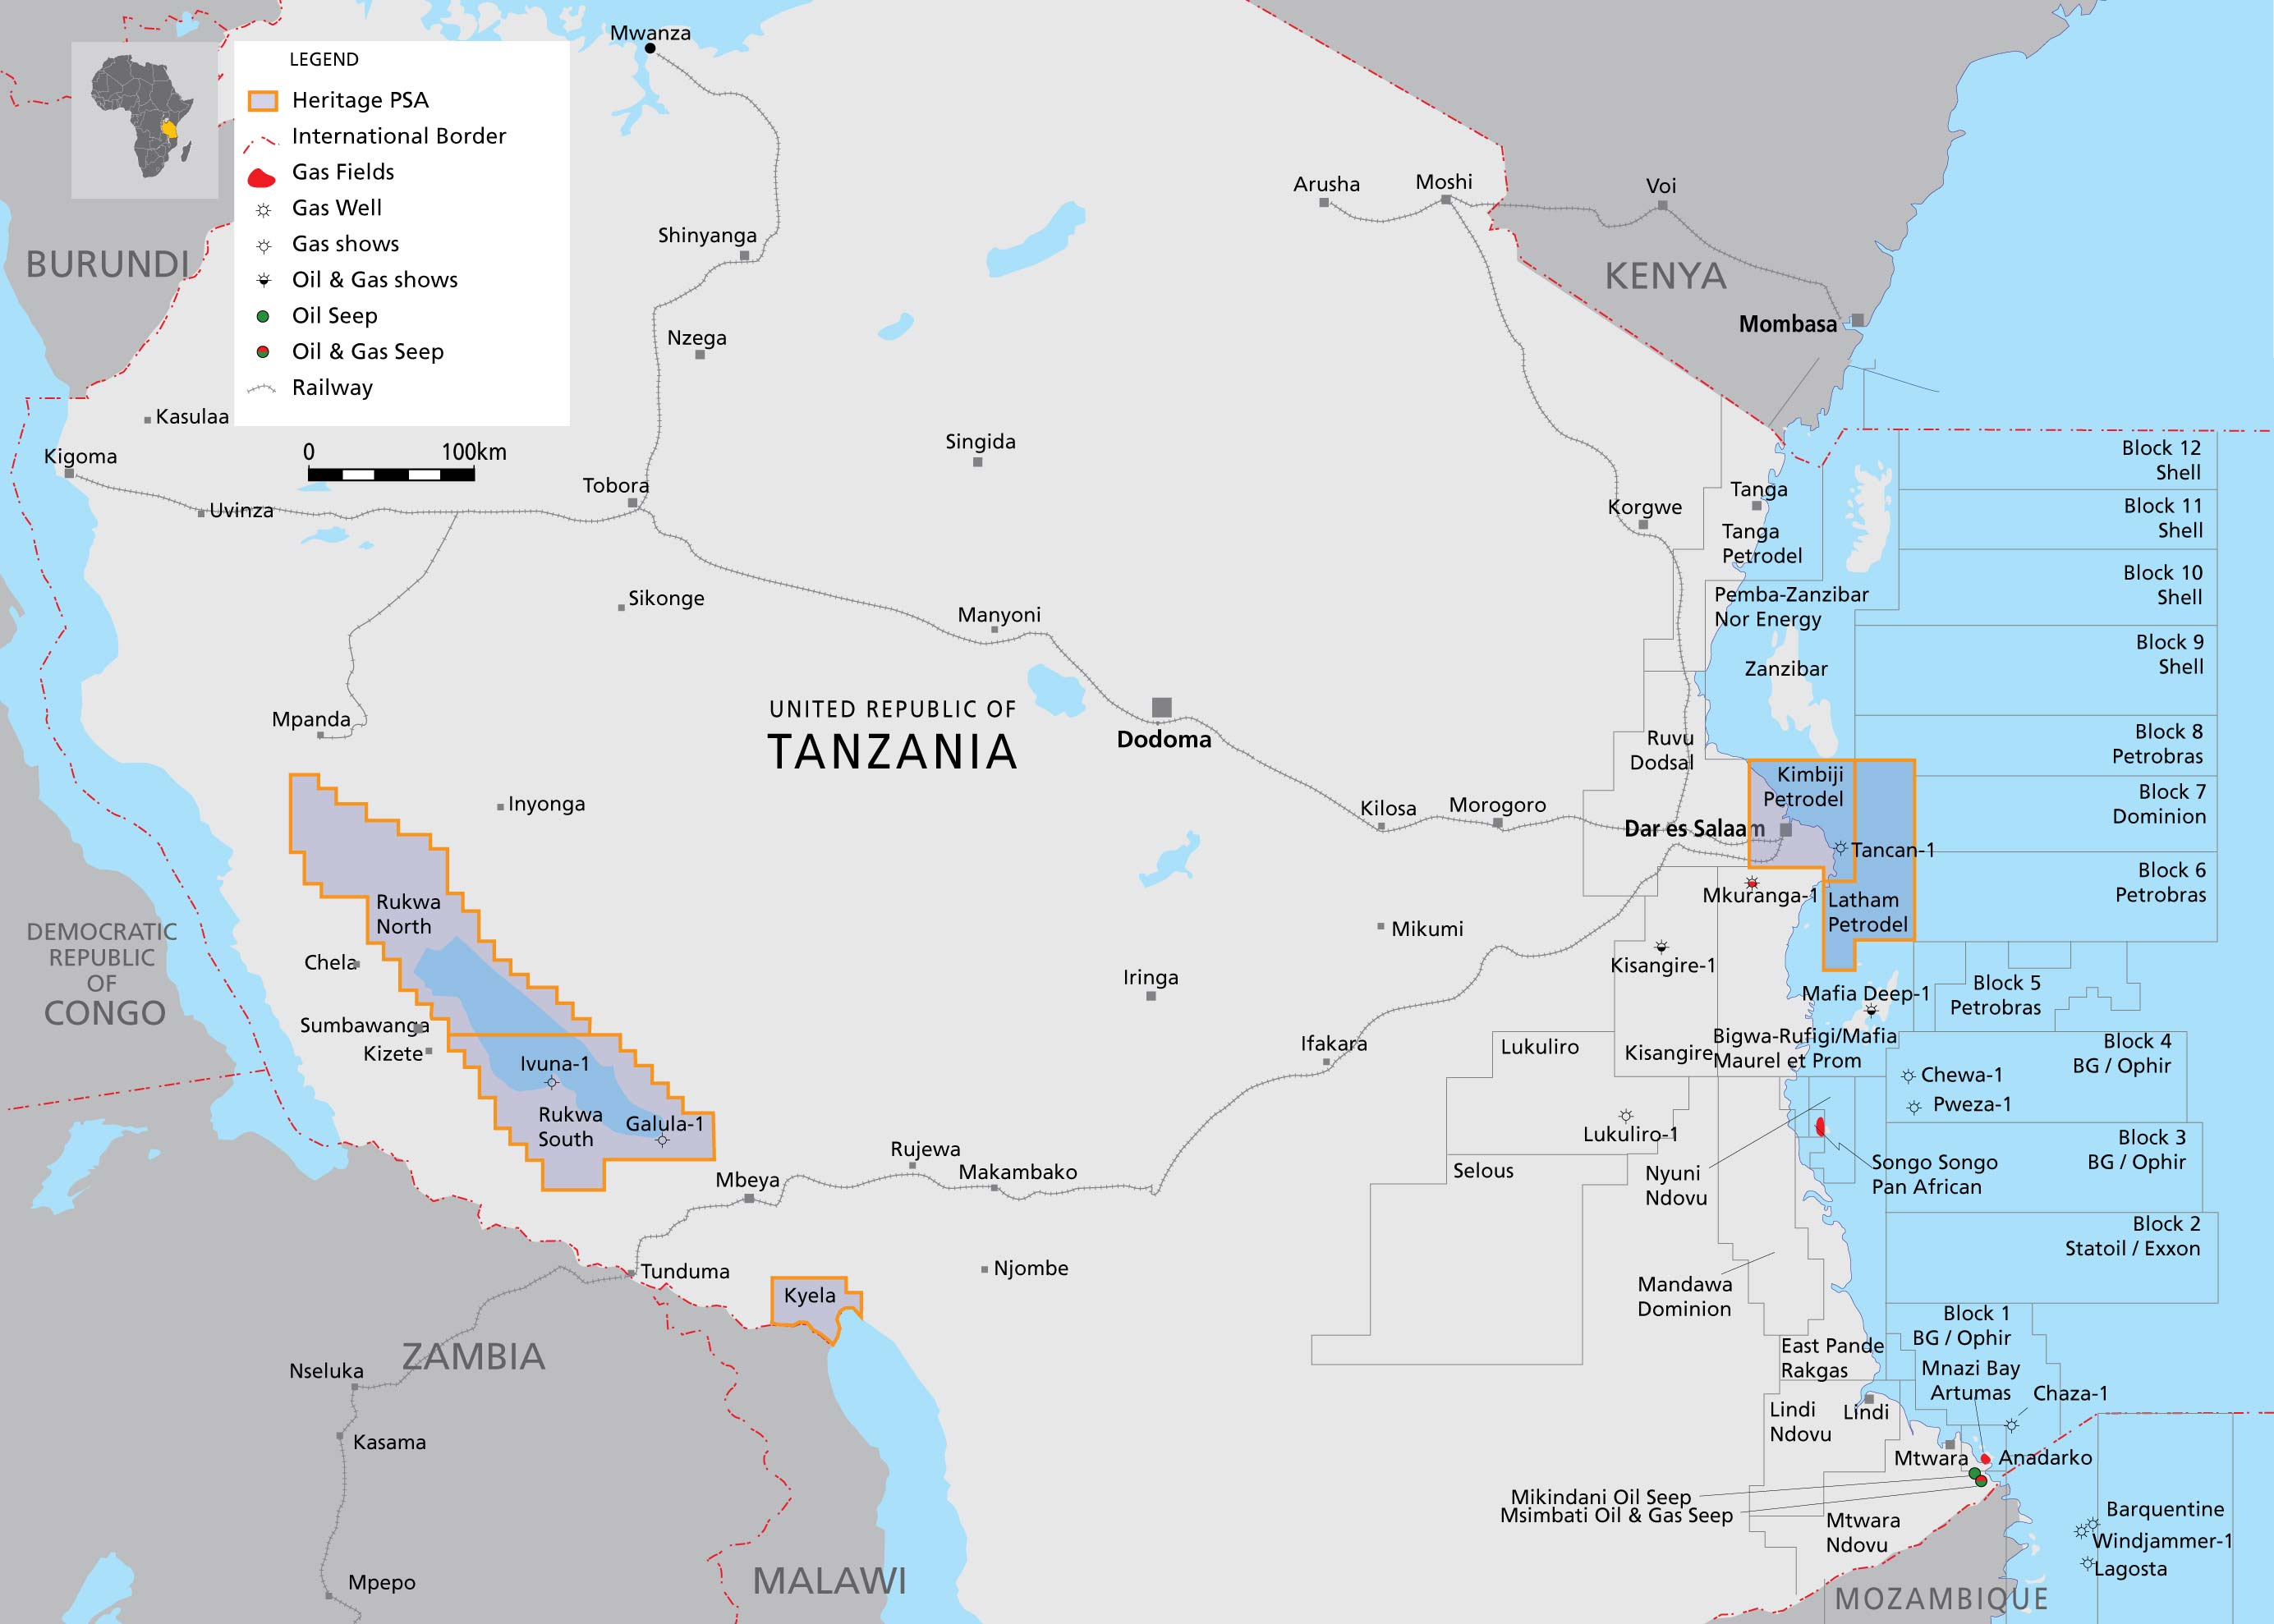 https://www.tzaffairs.org/wp-content/uploads/2012/04/tanzania_map3.jpg